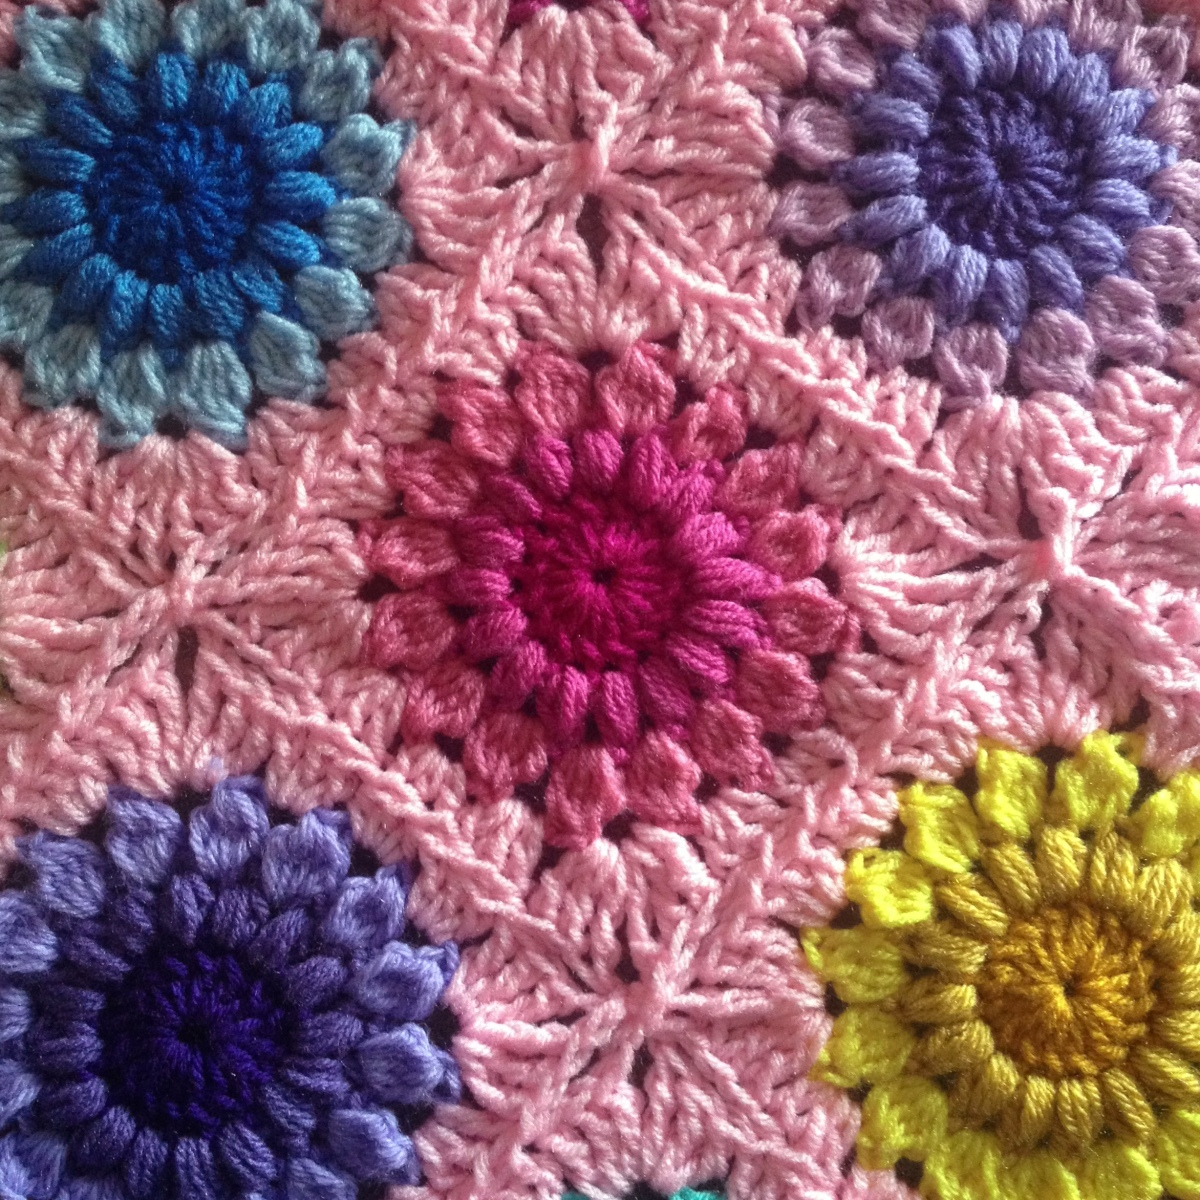 Sunburst Flower Blanket Tutorial